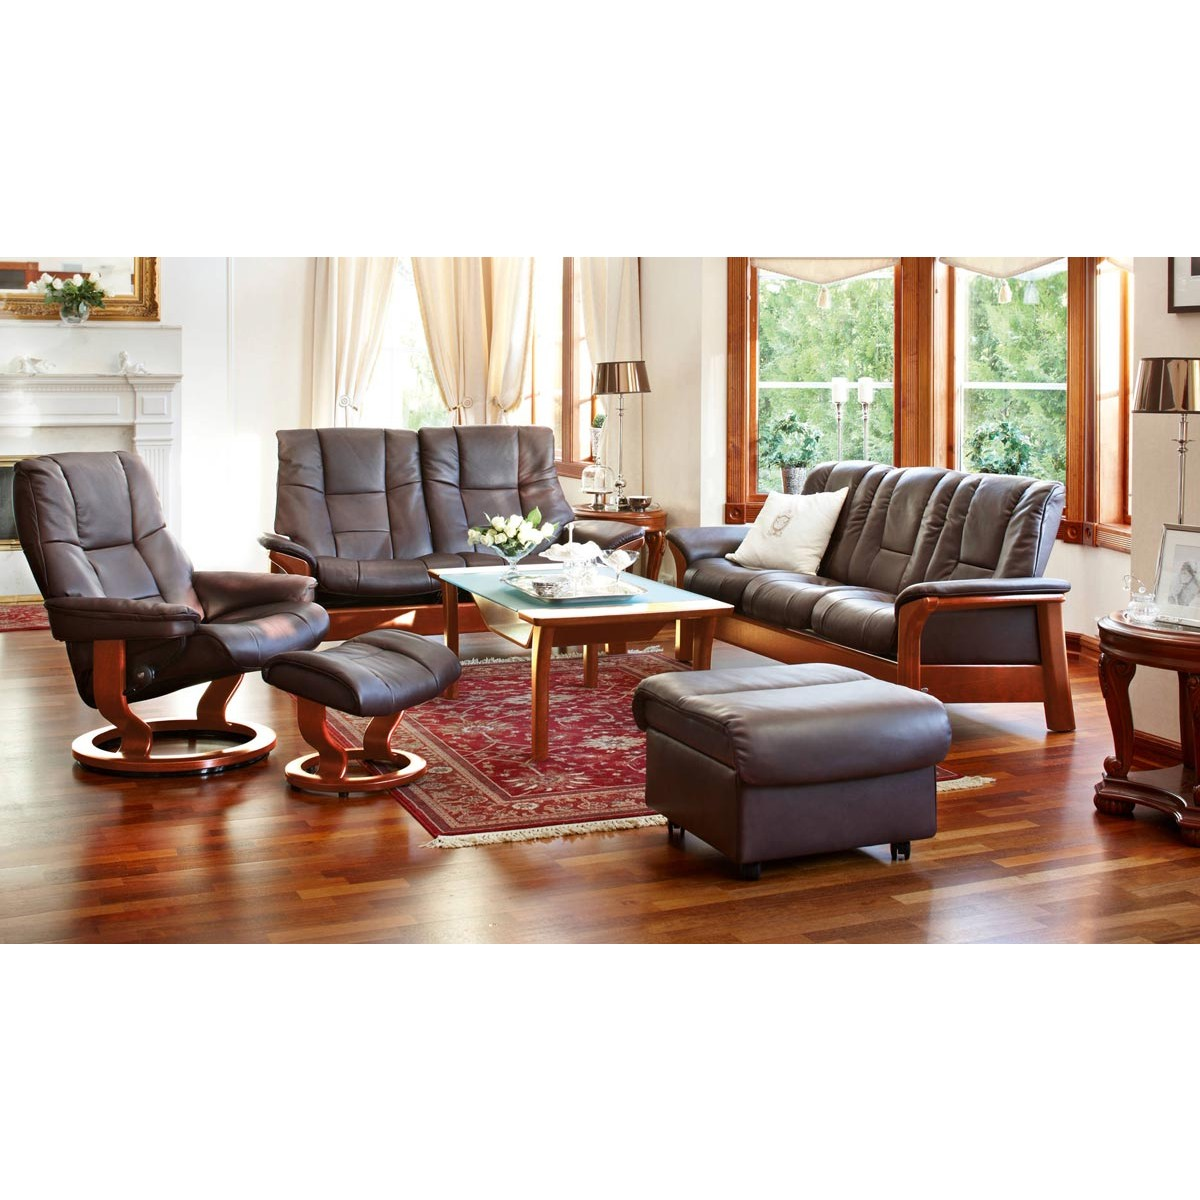 Stressless Buckingham Low-Back Sofa  sc 1 st  Danco Modern & Stressless Buckingham Low-Back Sofa from $4095.00 by Stressless ...